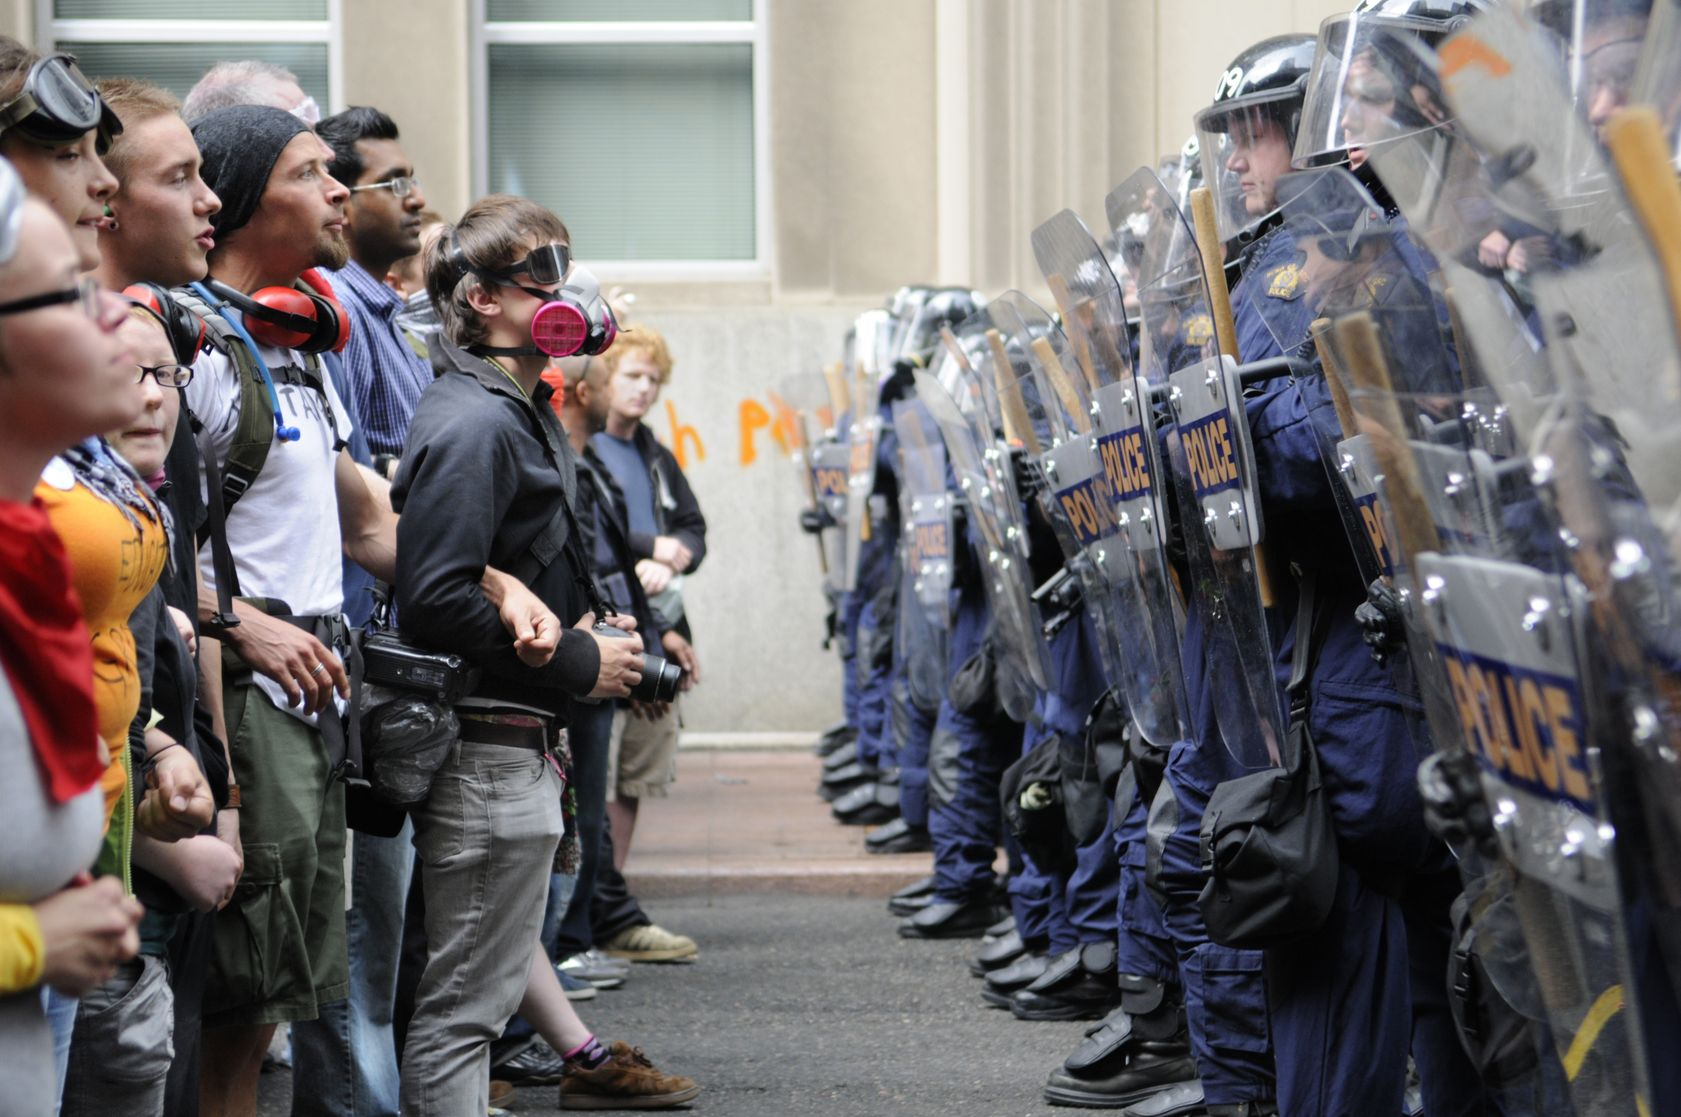 20263987 - toronto-june 26: toronto riot police (r) restrict protesters from entering g20 summit area at the metro convention centre on june 26, 2010 in toronto, canada.